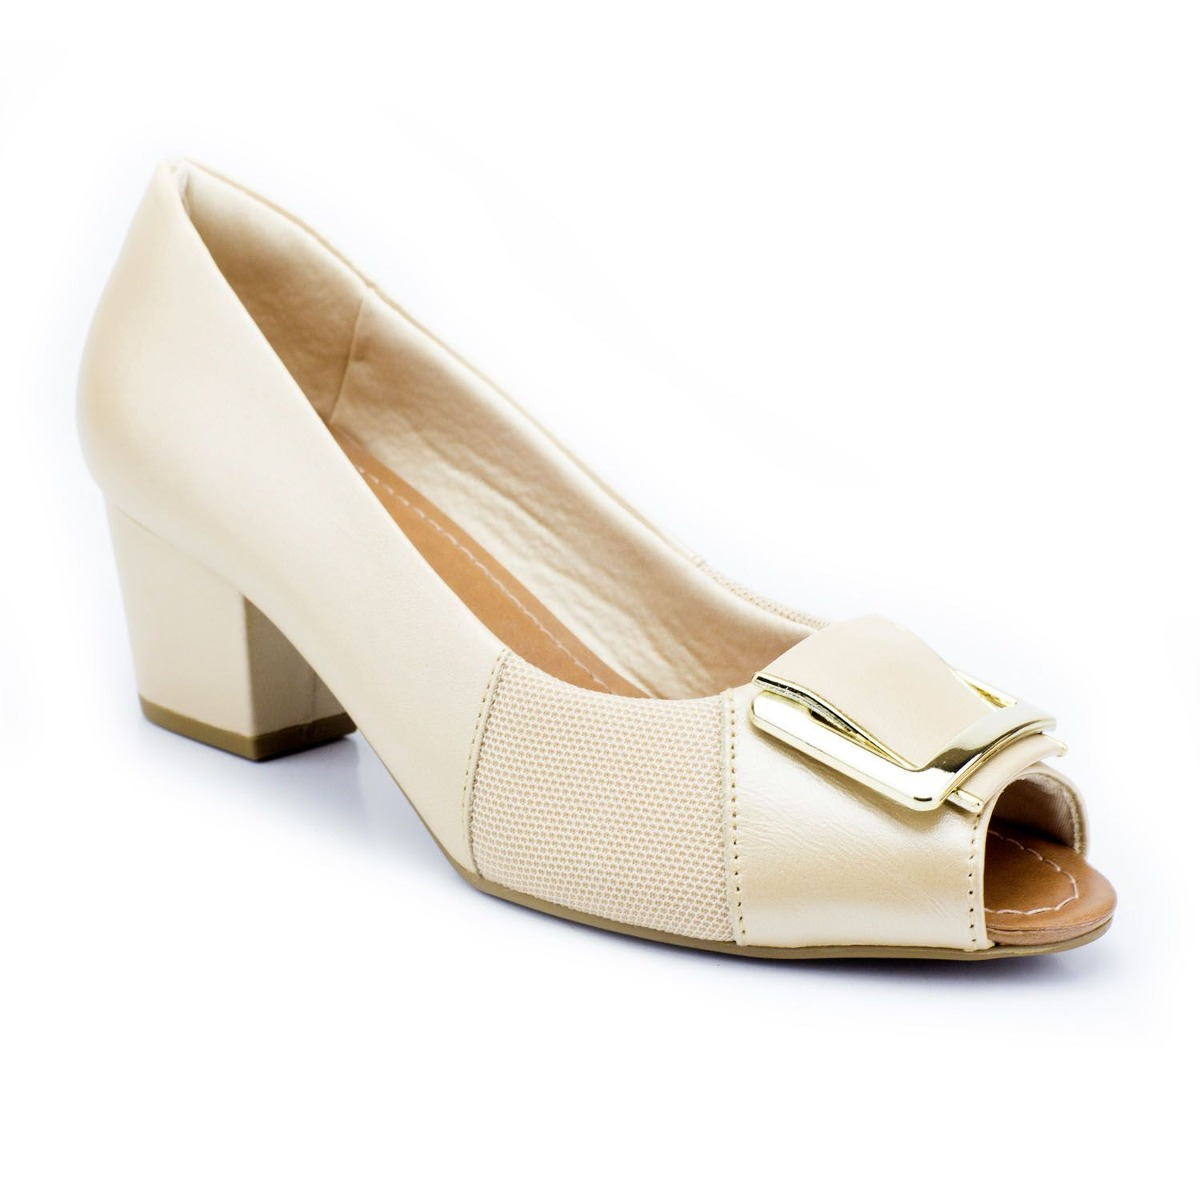 d398b17111 Peep Toe Usaflex Nude Joanetes Linha Conforto By Vértice - R  239